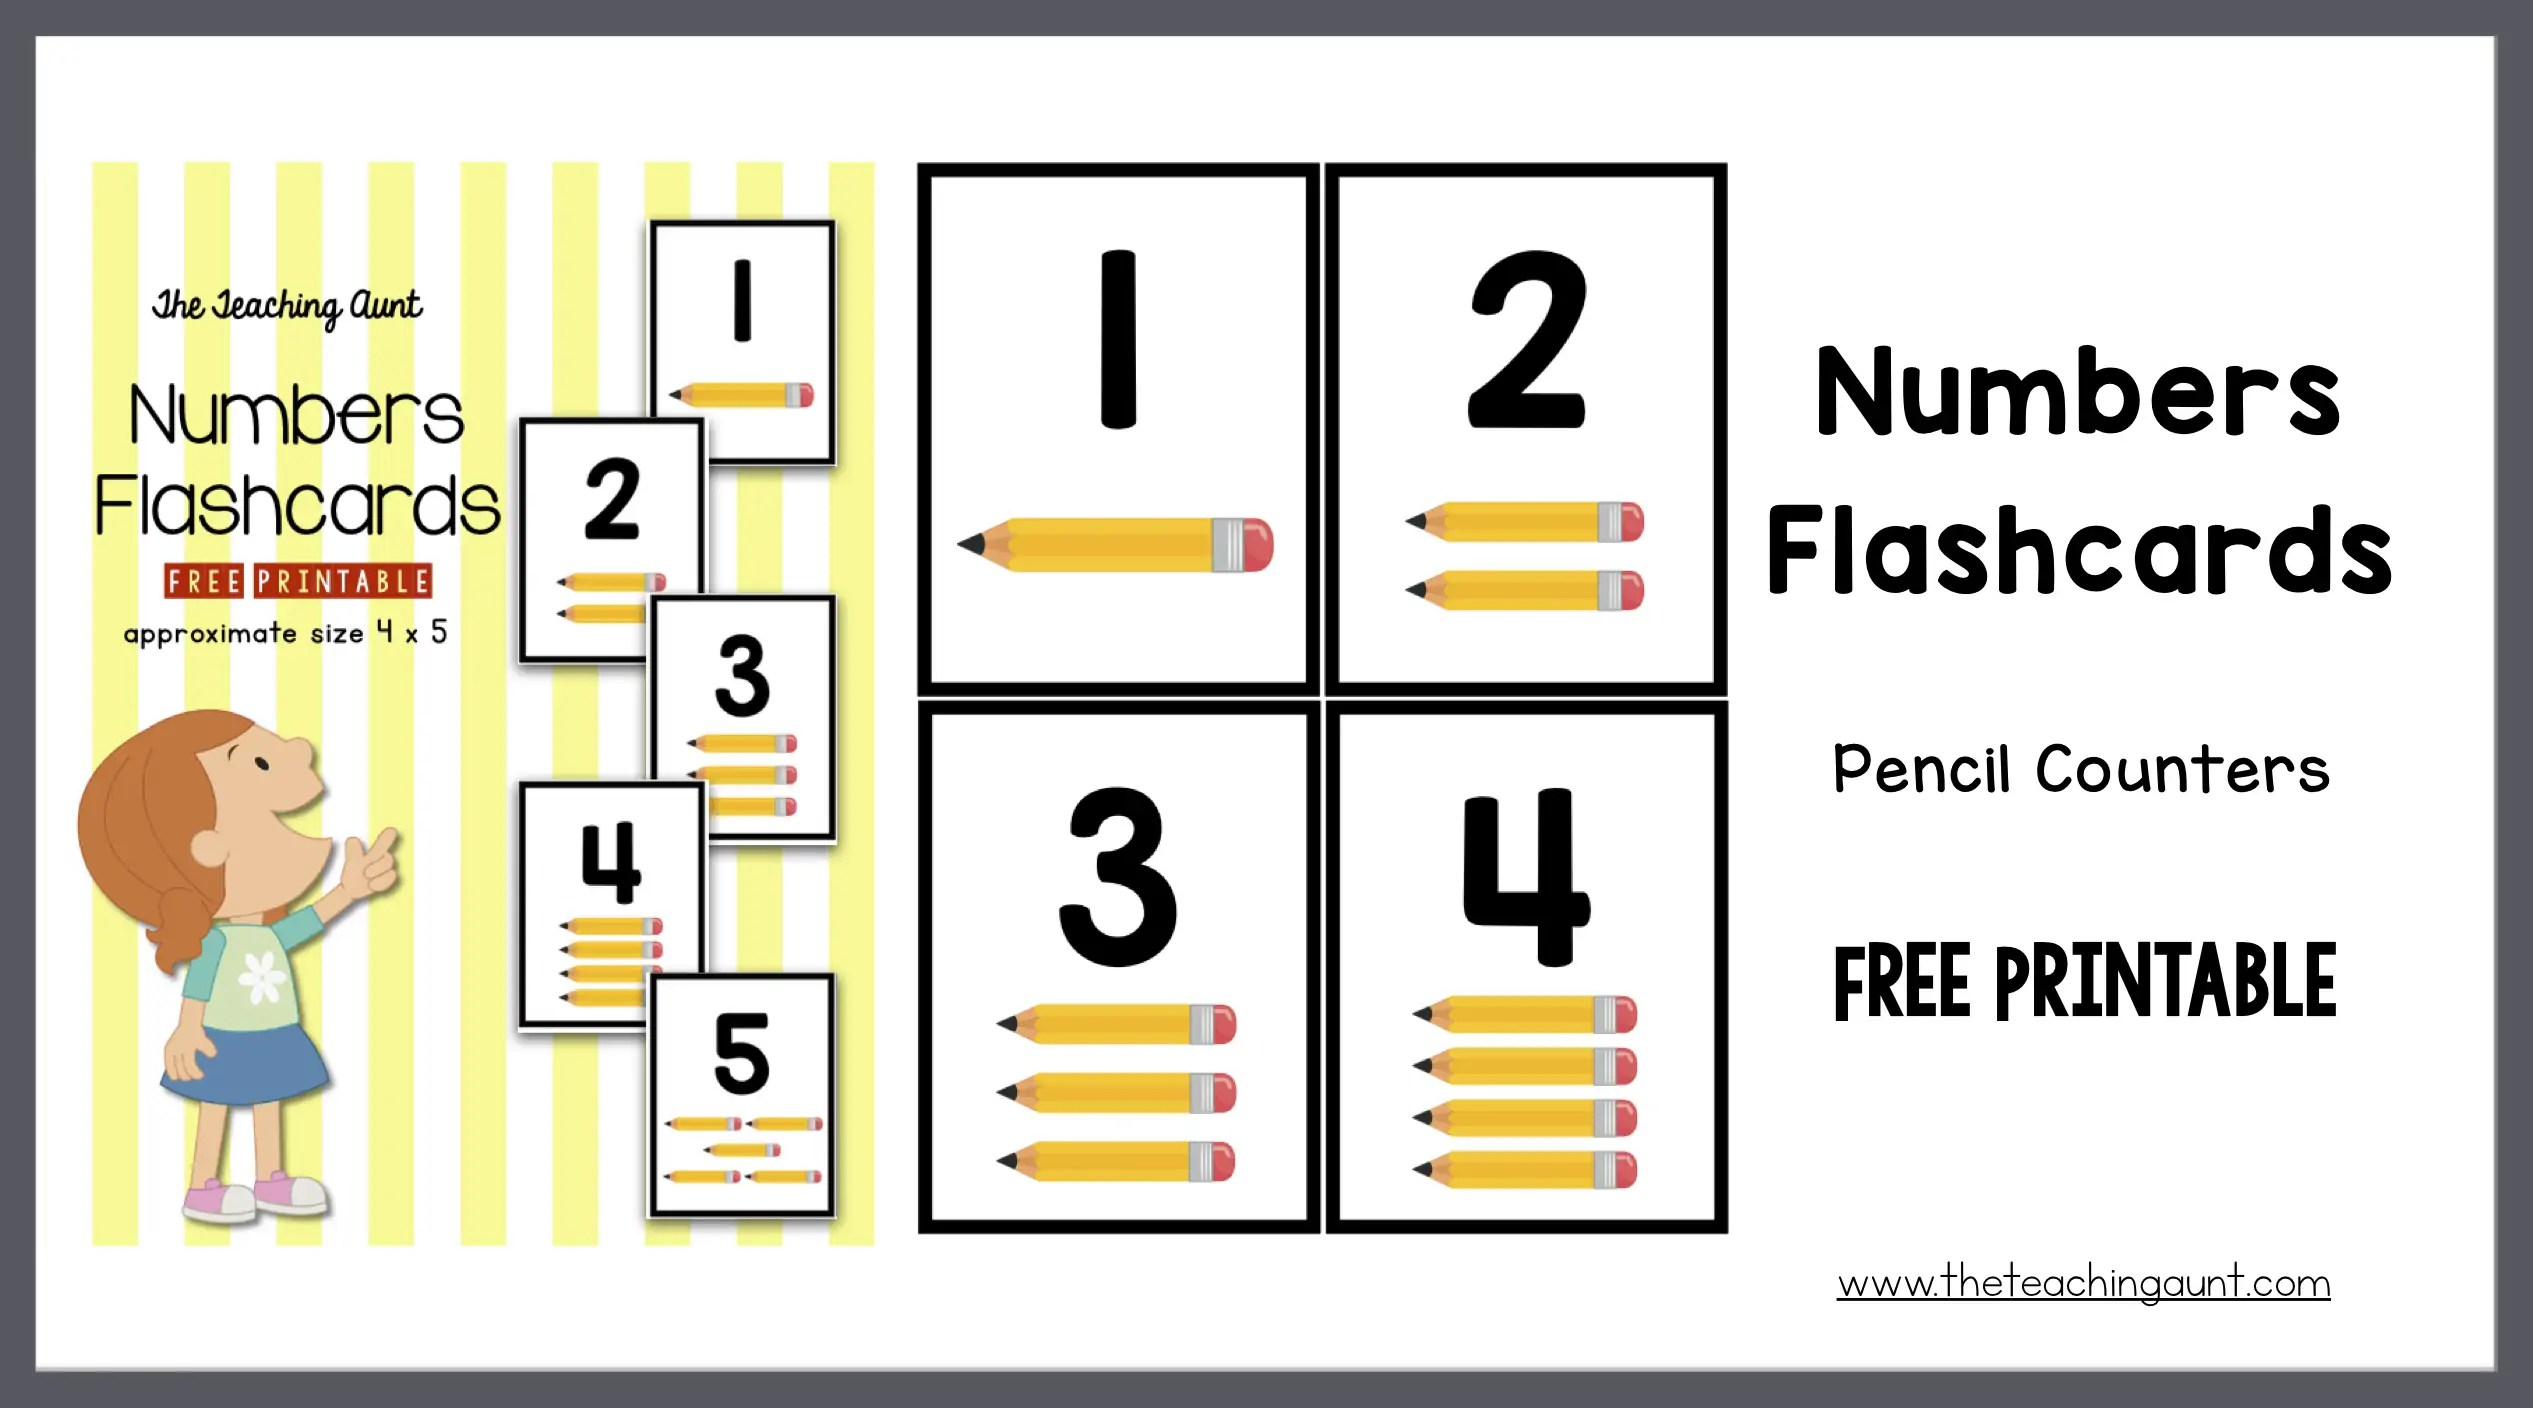 photo about Printable Number Flashcards named Quantities Flashcards Pencil Counters - The Coaching Aunt